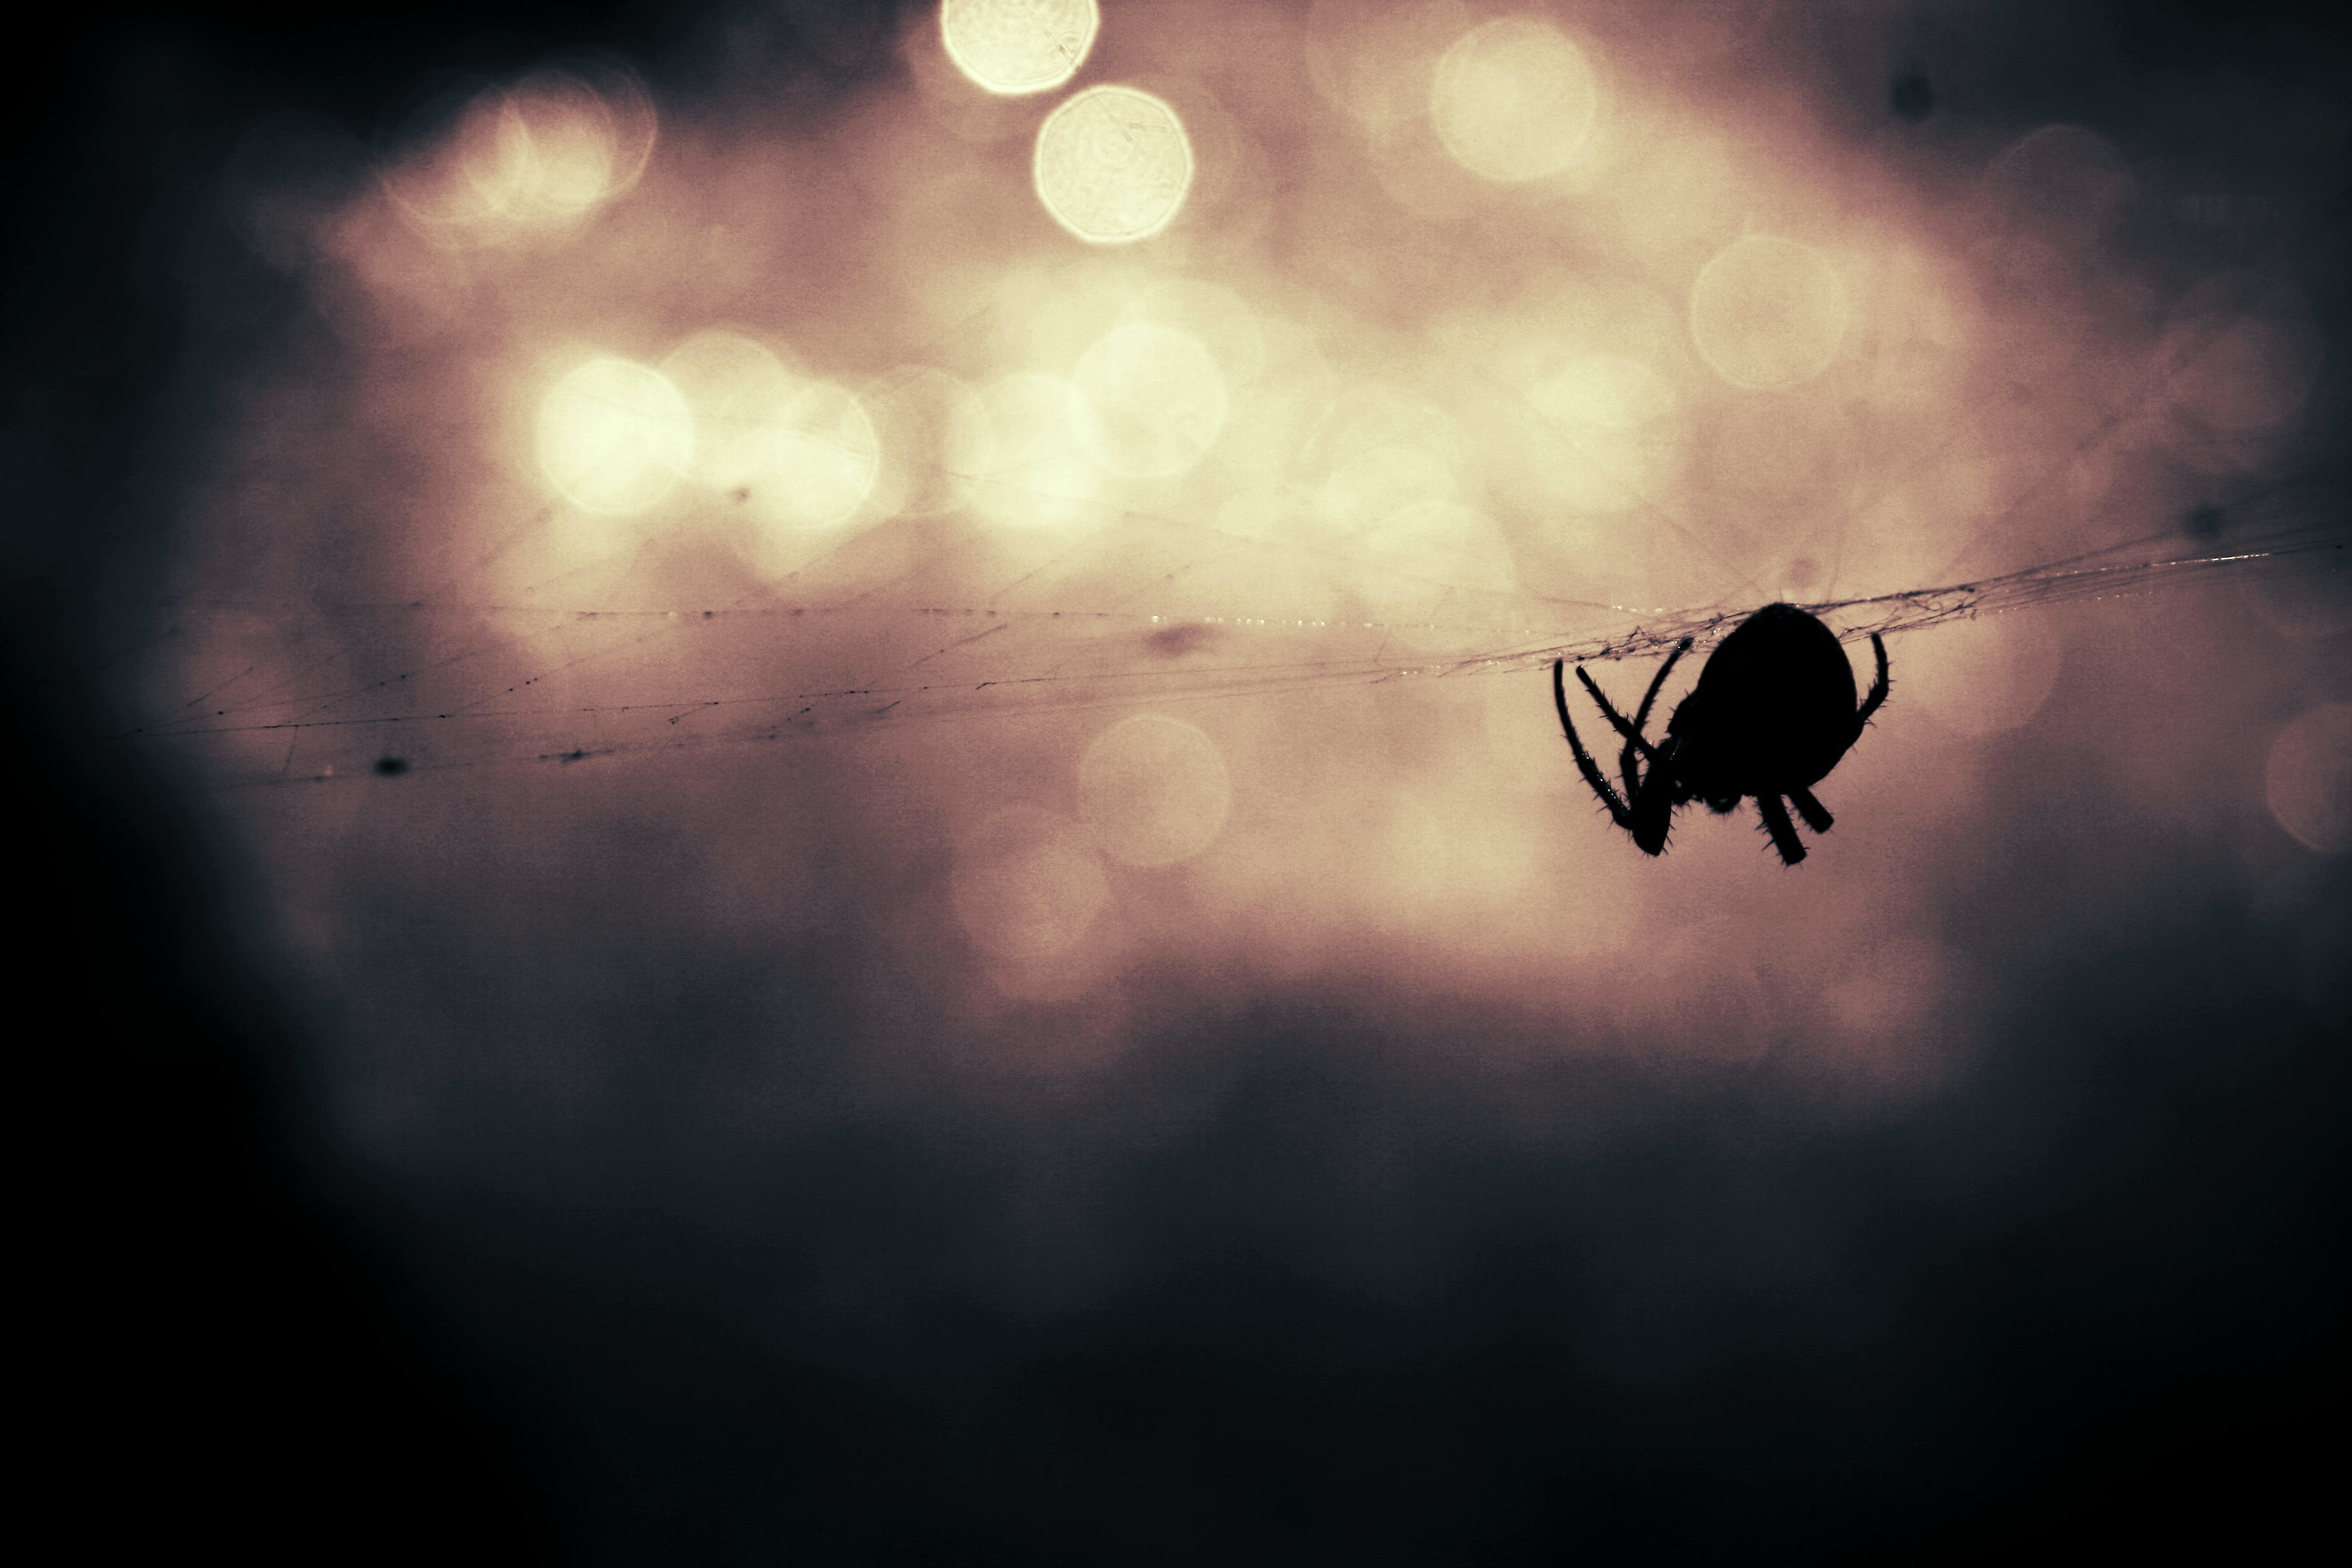 Free stock photo of animal, bokeh, insect, silhouette